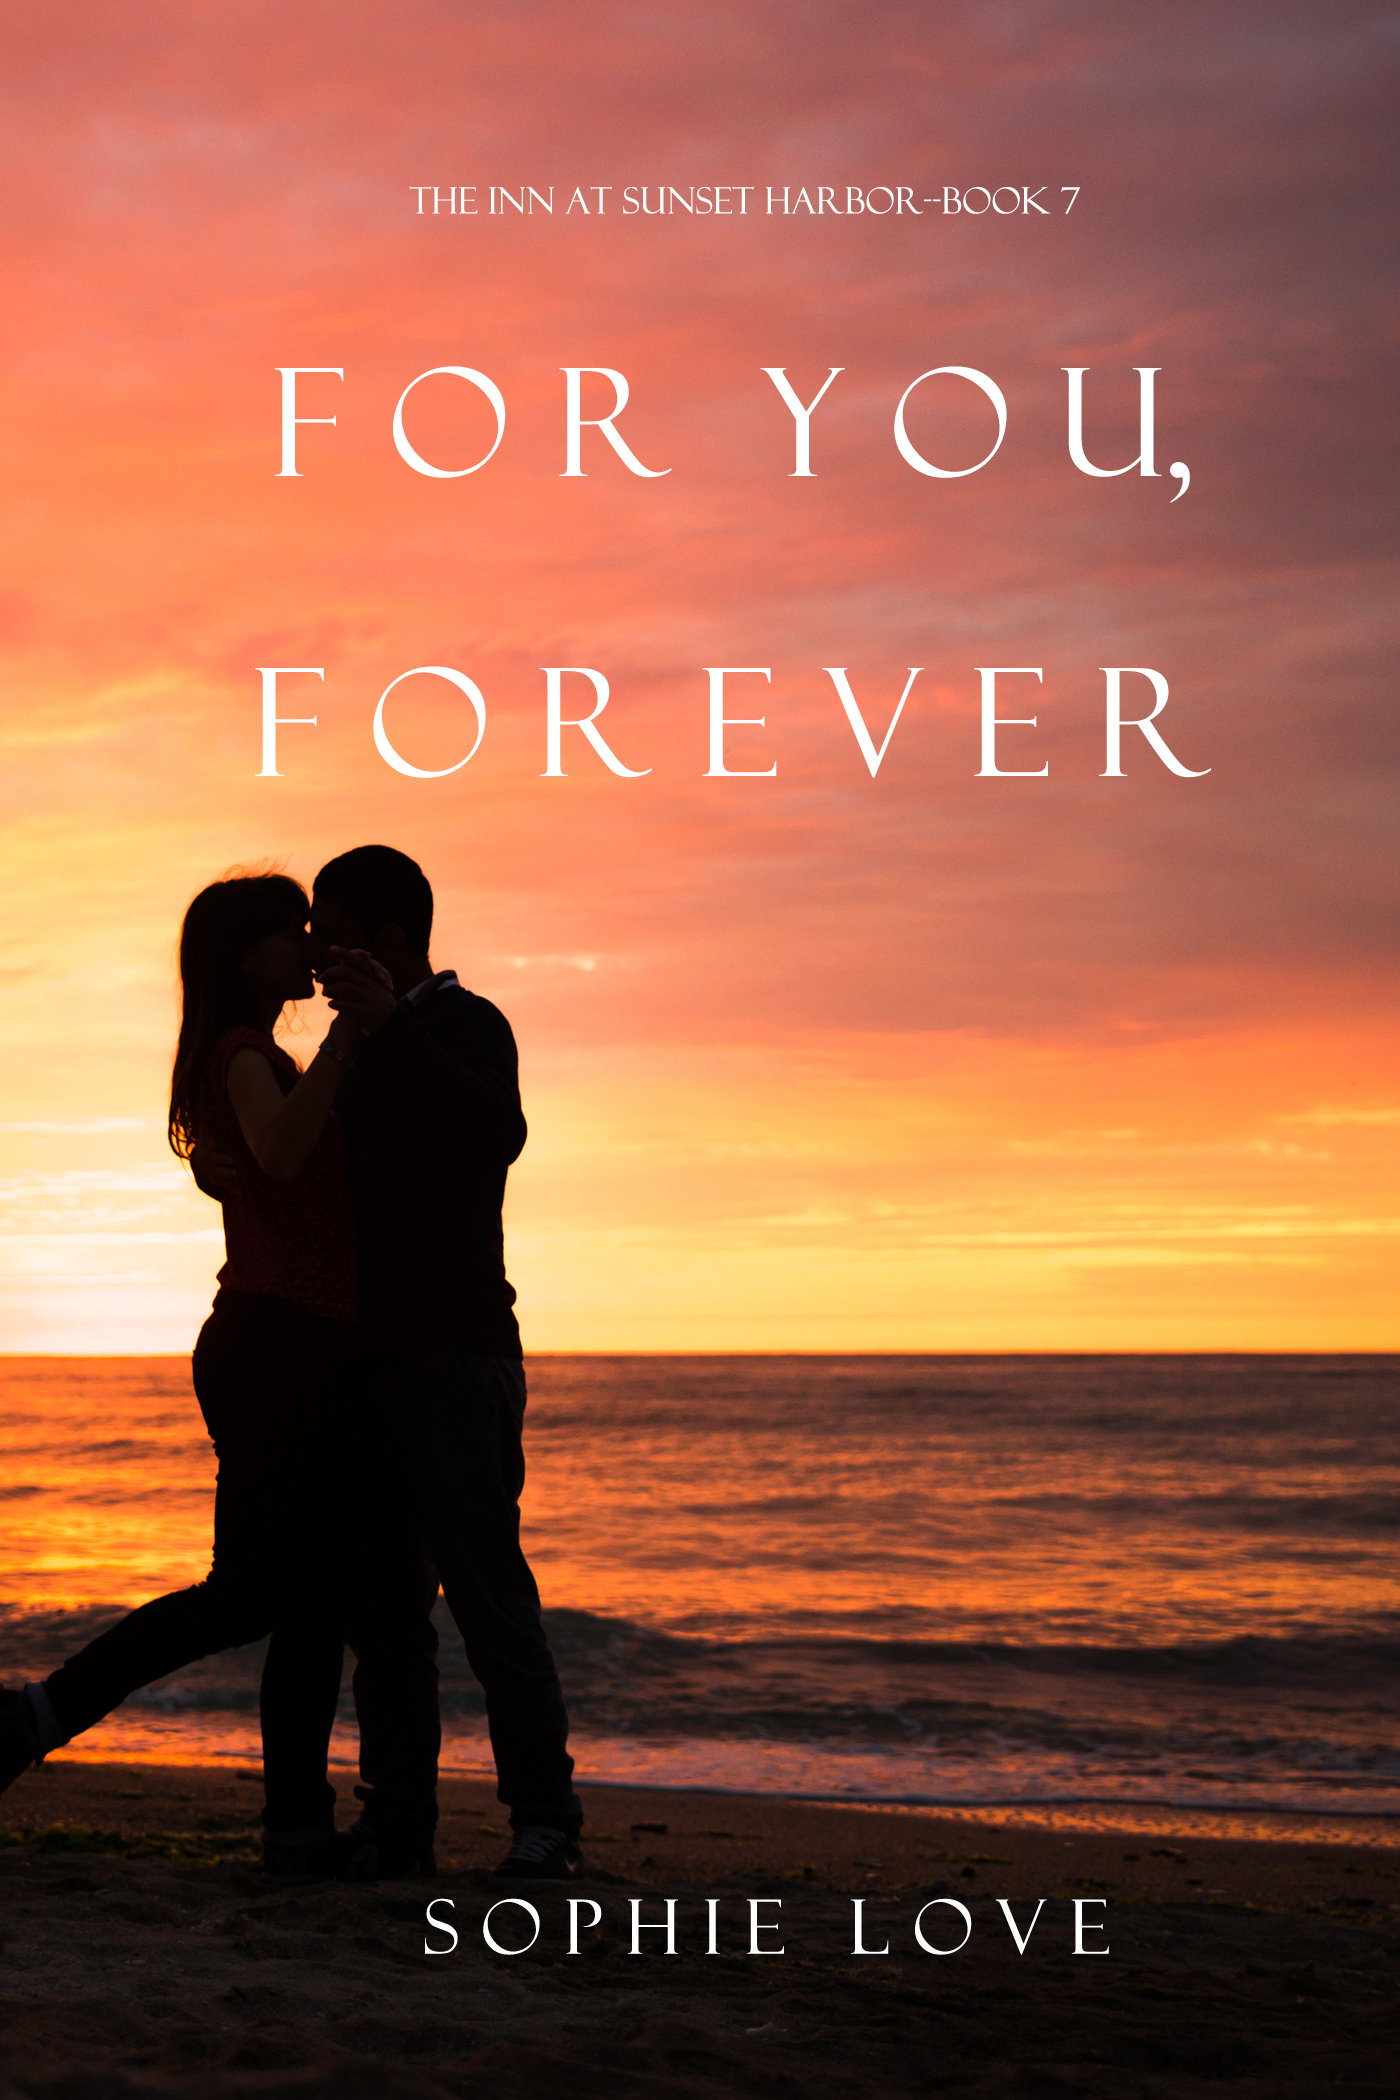 For You, Forever